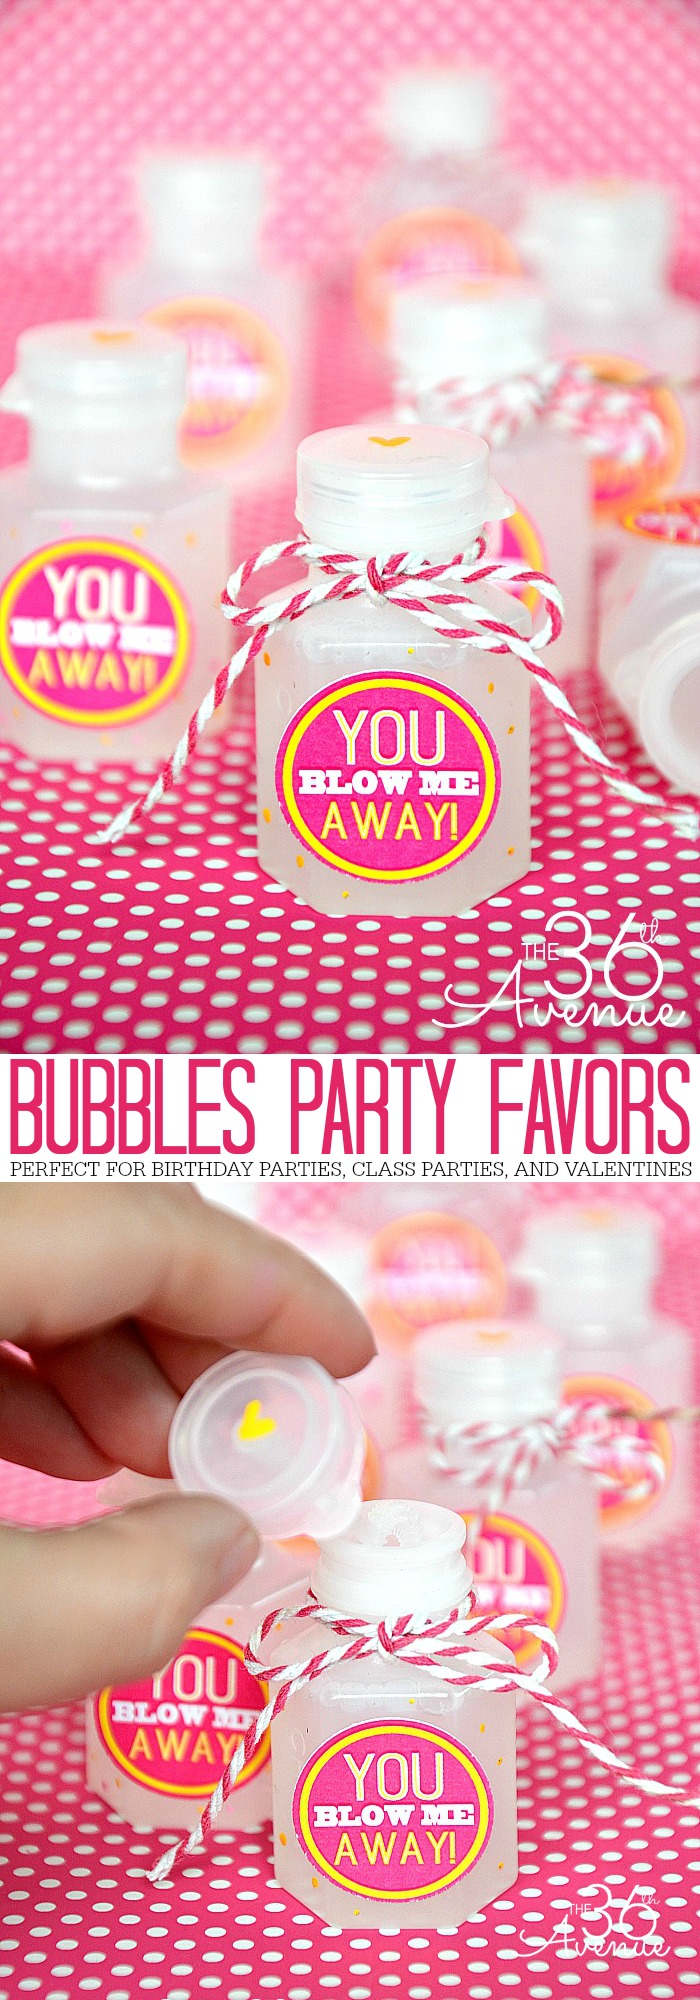 Free Printable and Valentines. These also make the perfect party favors!